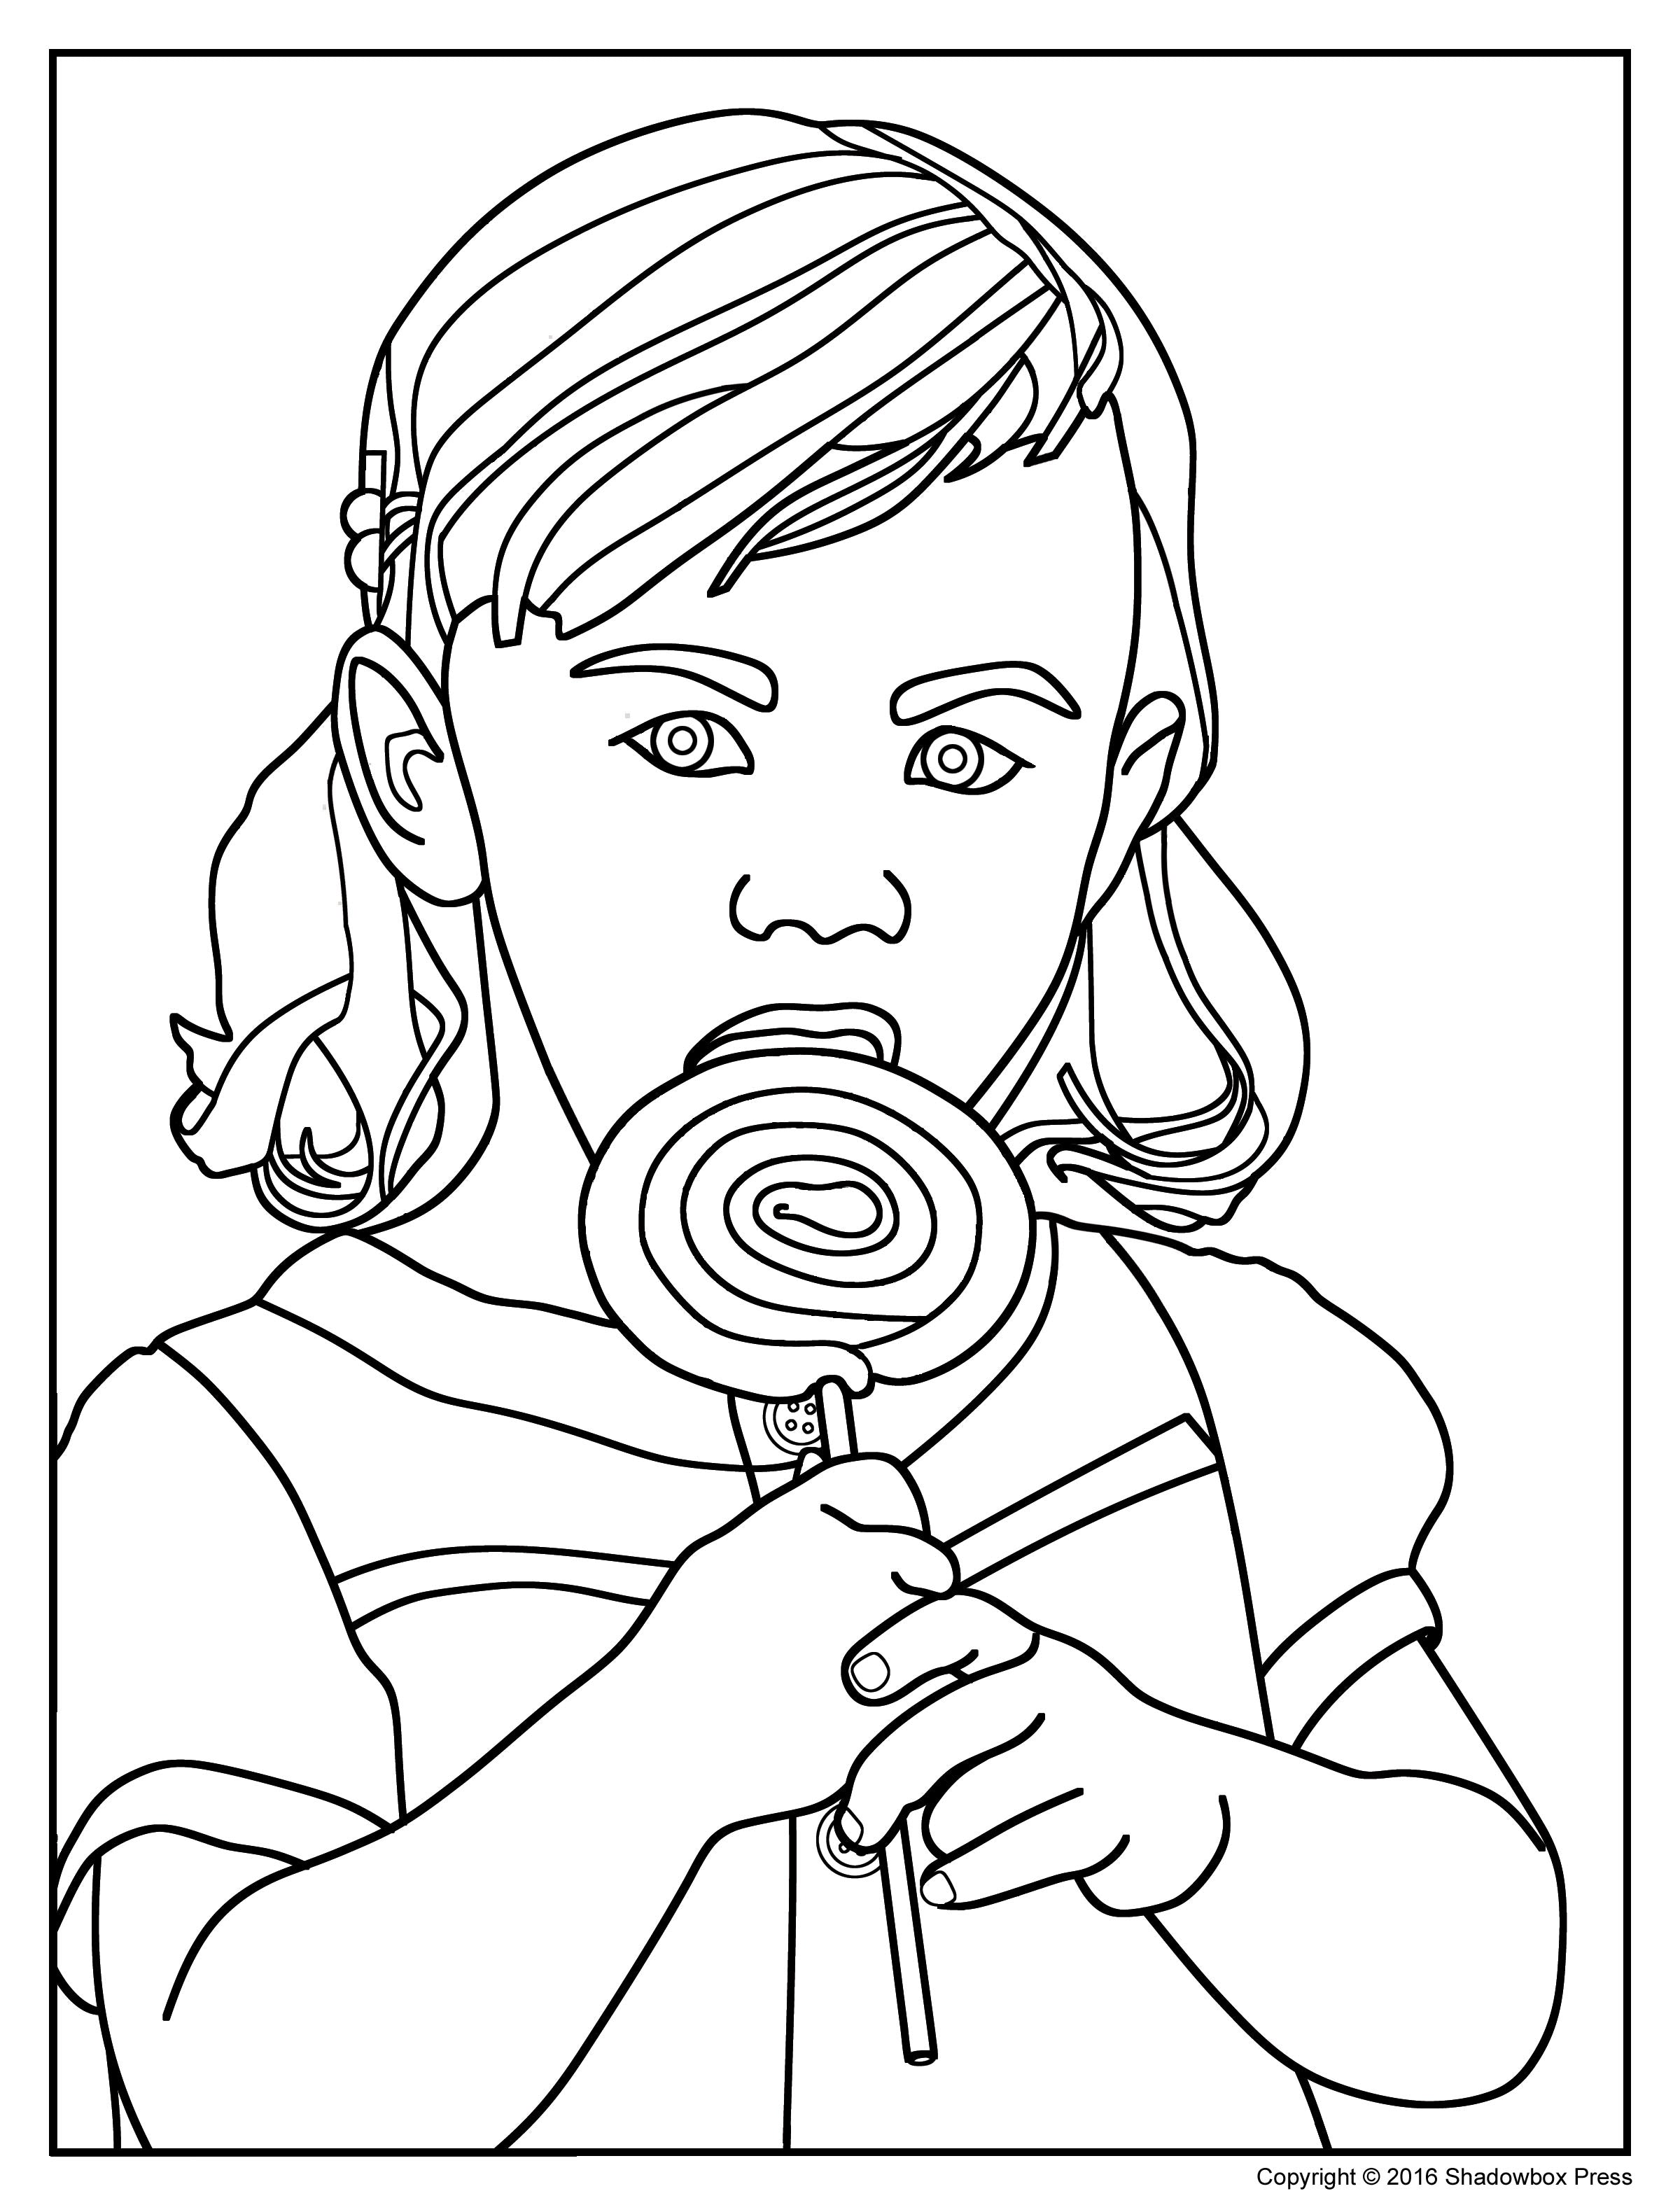 Colouring for adults benefits - Gumball Machine Coloring Page Gumball Machine Photograph